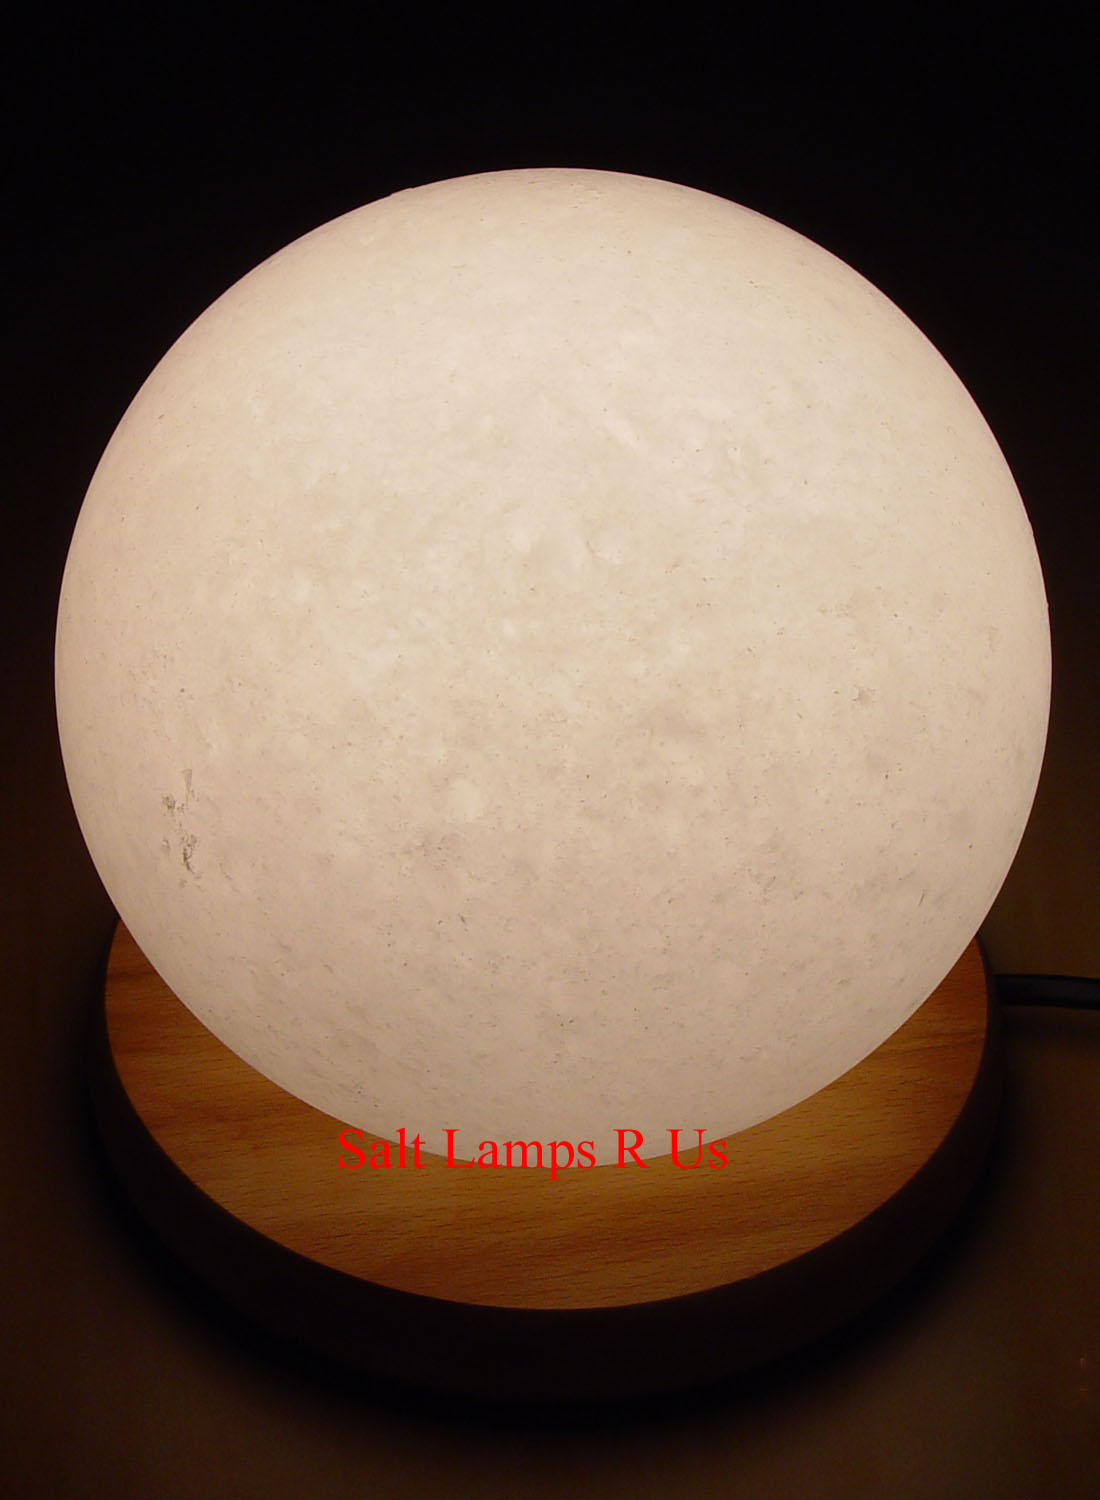 Himalayan Salt Lamps White : Globe Salt Lamp White Himalayan with Wood Base Saltlamps-R-Us